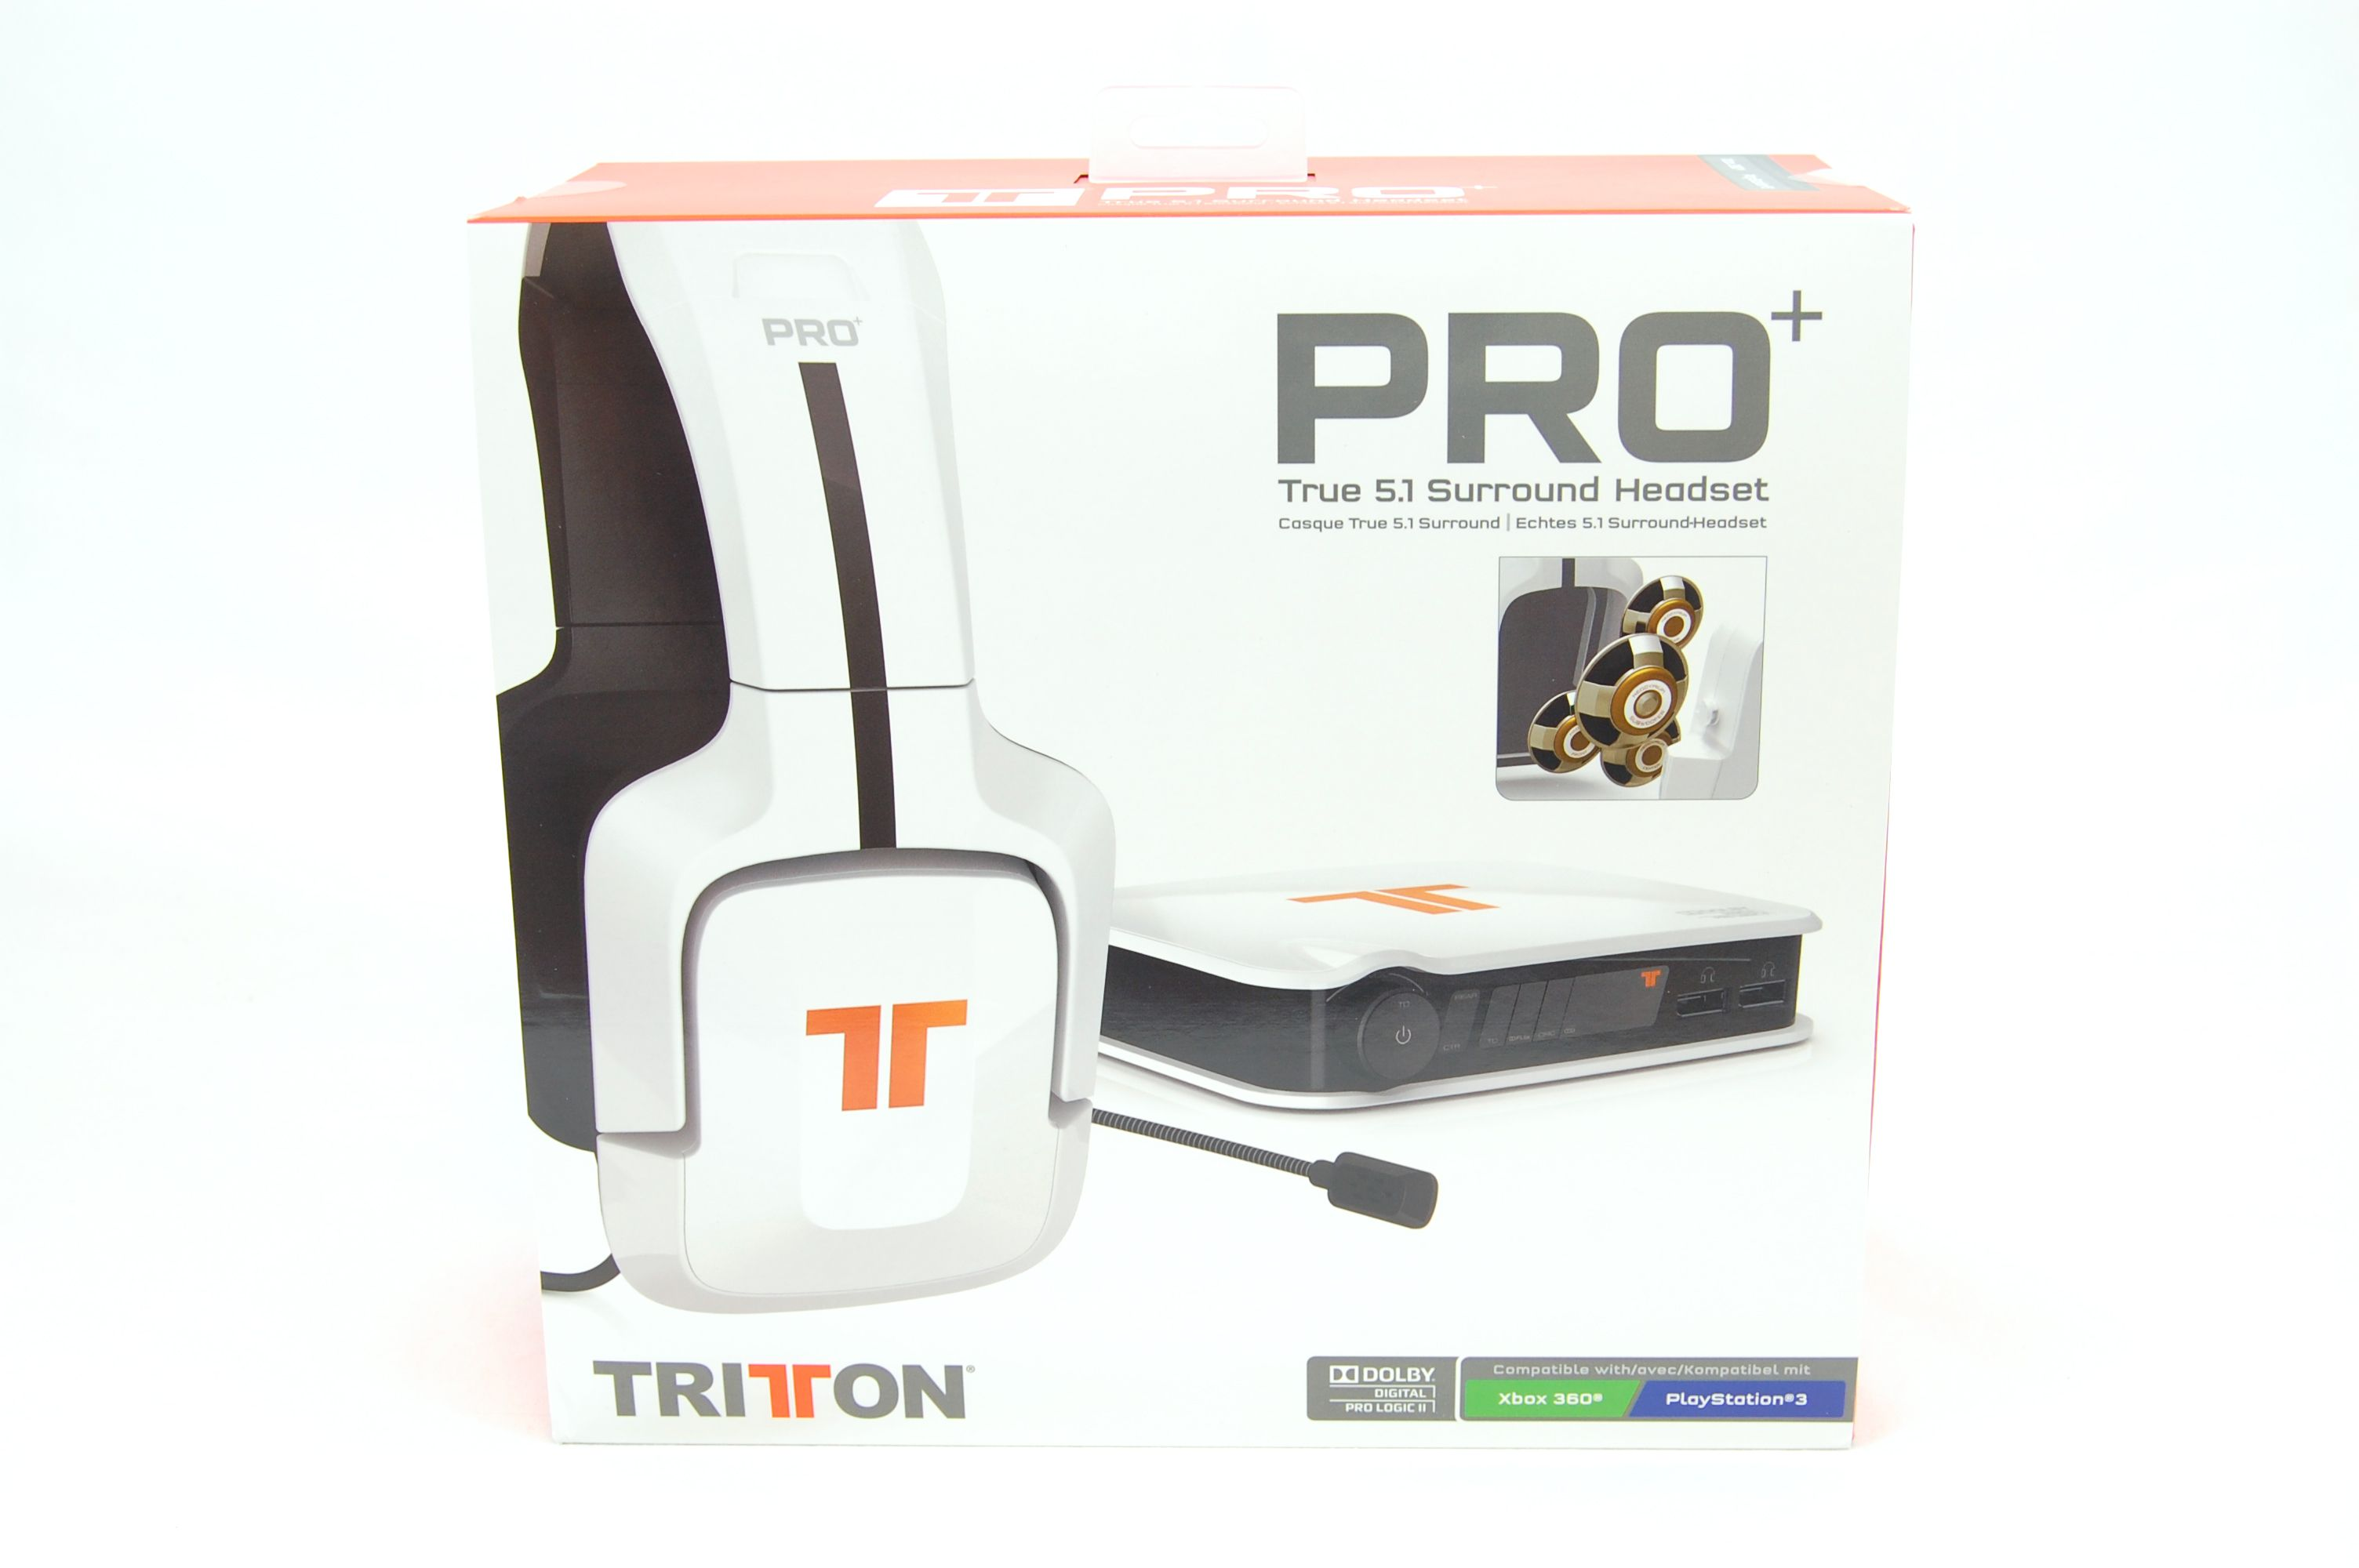 Tritton by MadCatz Pro+ 5.1 Surround Gaming Headset Review - Packaging